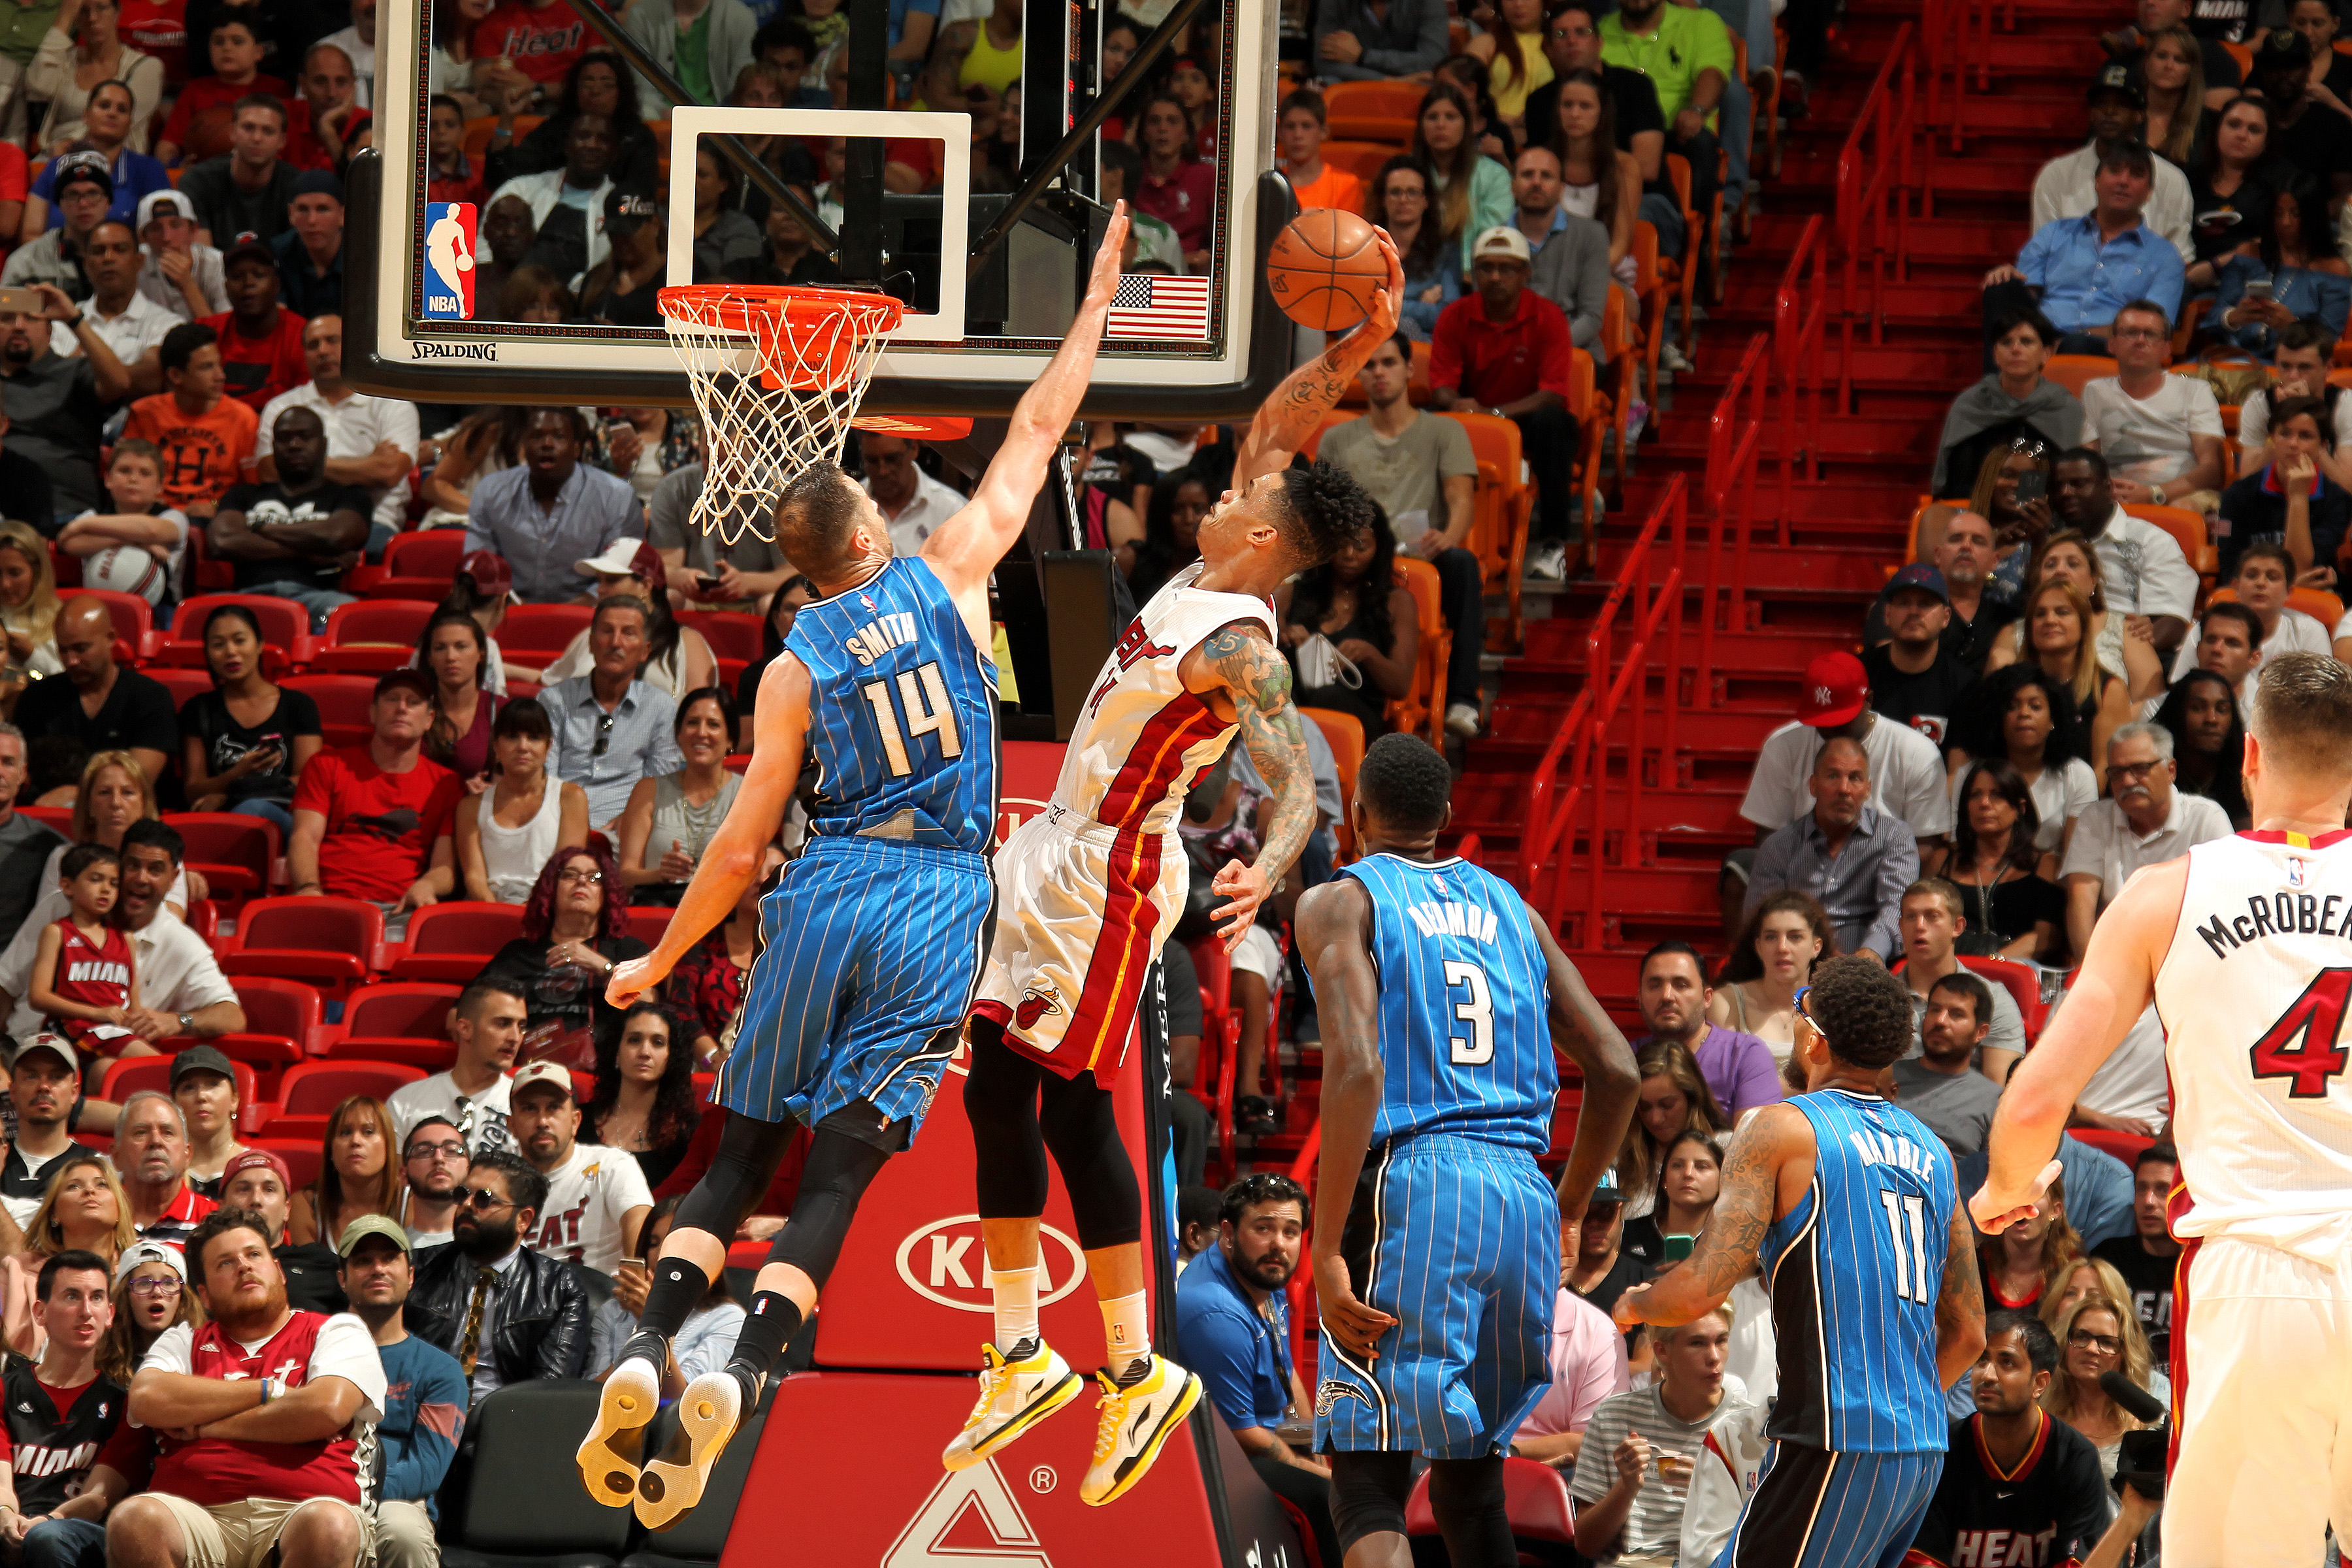 MIAMI, FL - APRIL 10: Gerald Green #14 of the Miami Heat goes for the dunk during the game against the Orlando Magic on April 10, 2016 at AmericanAirlines Arena in Miami, Florida. (Photo by Issac Baldizon/NBAE via Getty Images)